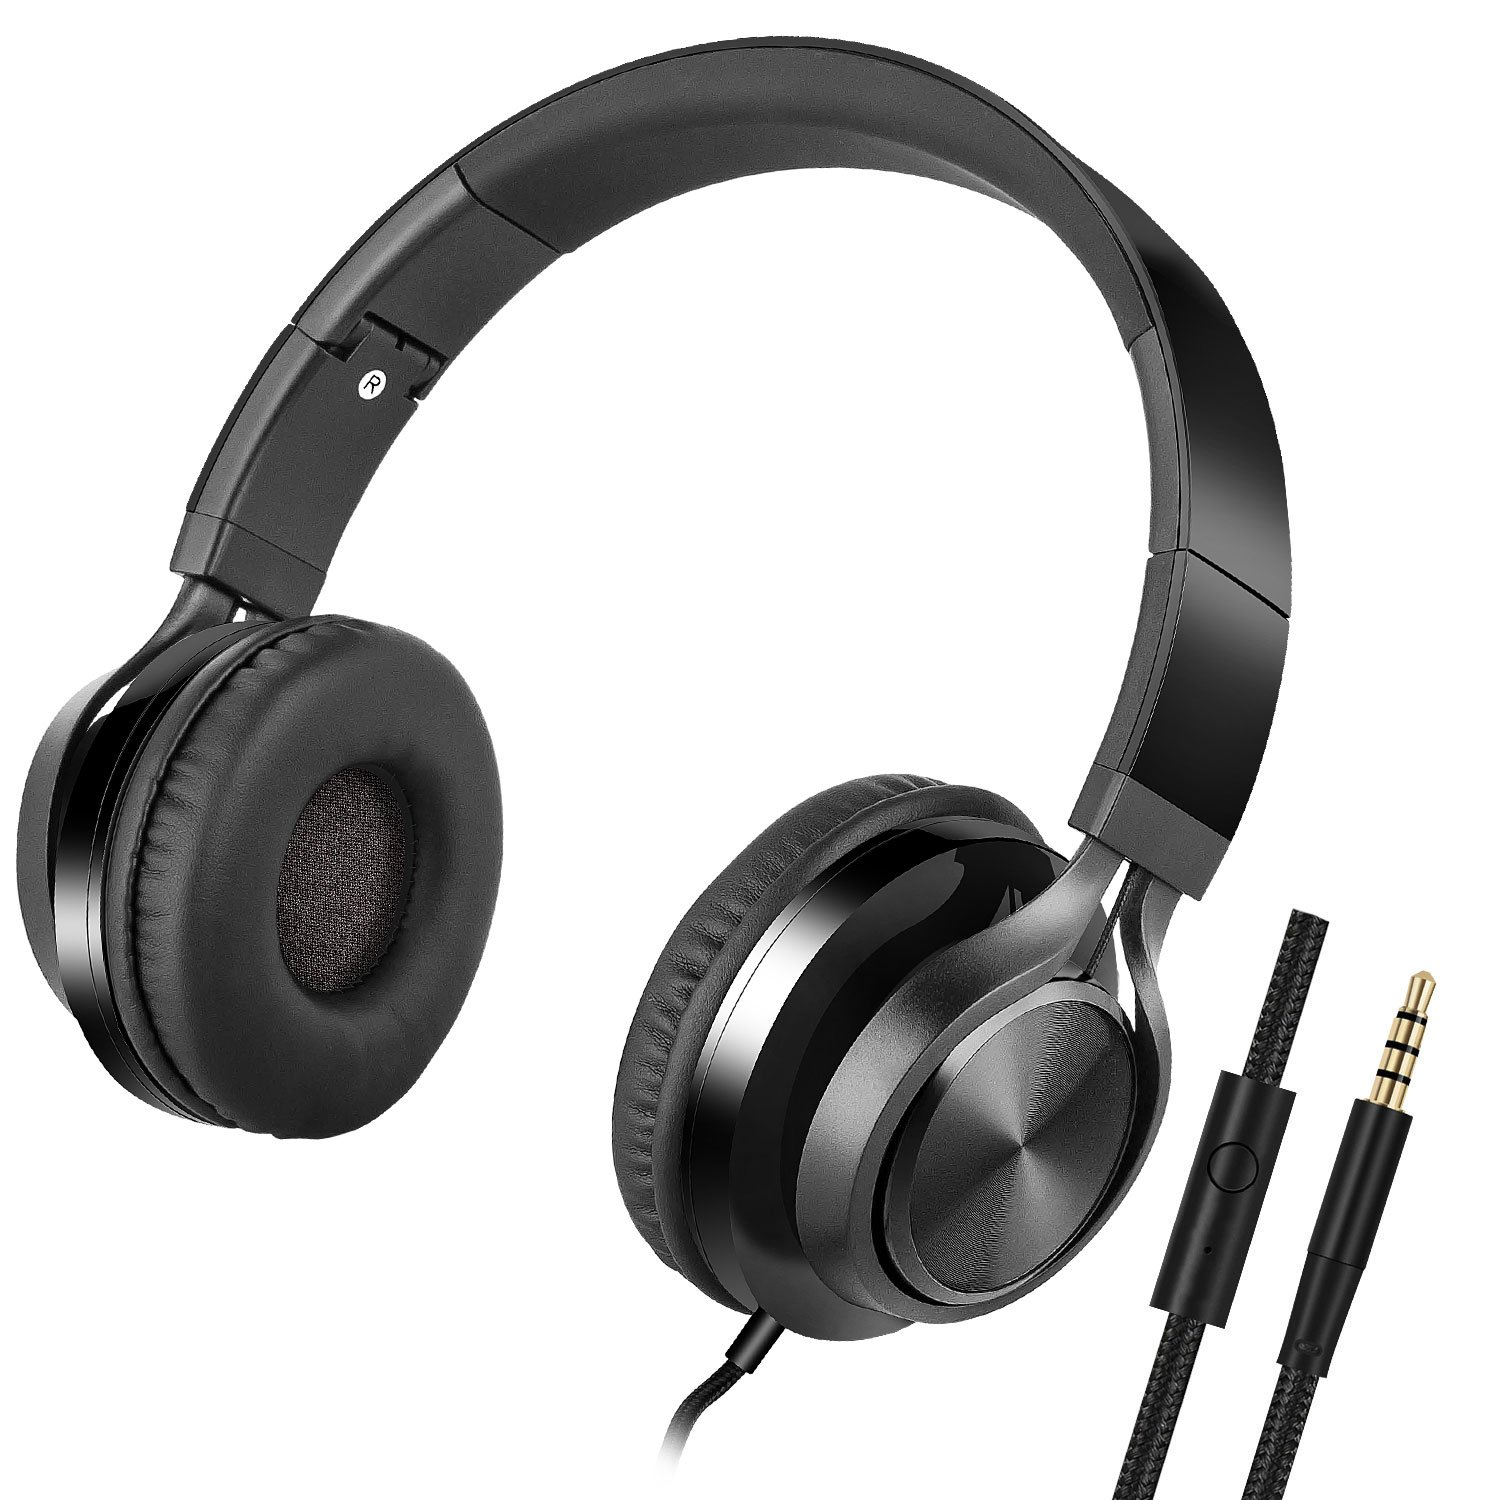 Foldable Computer Headsets, Lightweight Headphones with Microphone and 3.5mm Plug for iPhone,iPod,iPad, Android Smartphones, PC, Laptop, Mp3/mp4, Tablet Macbook (black) KEEPEAK